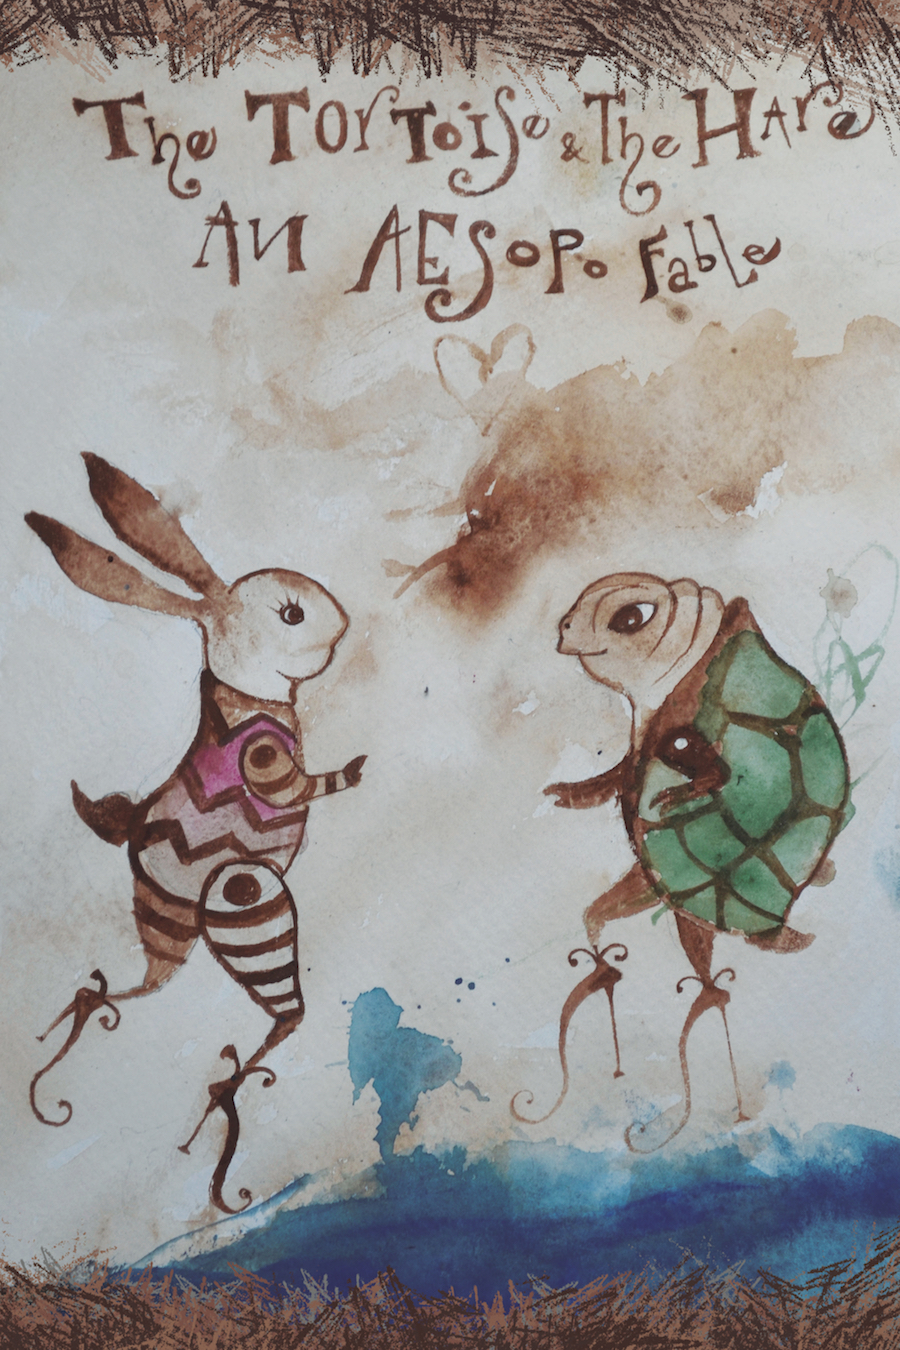 Tortoise and the Hare Hobuco Luis Macias music fairy tales